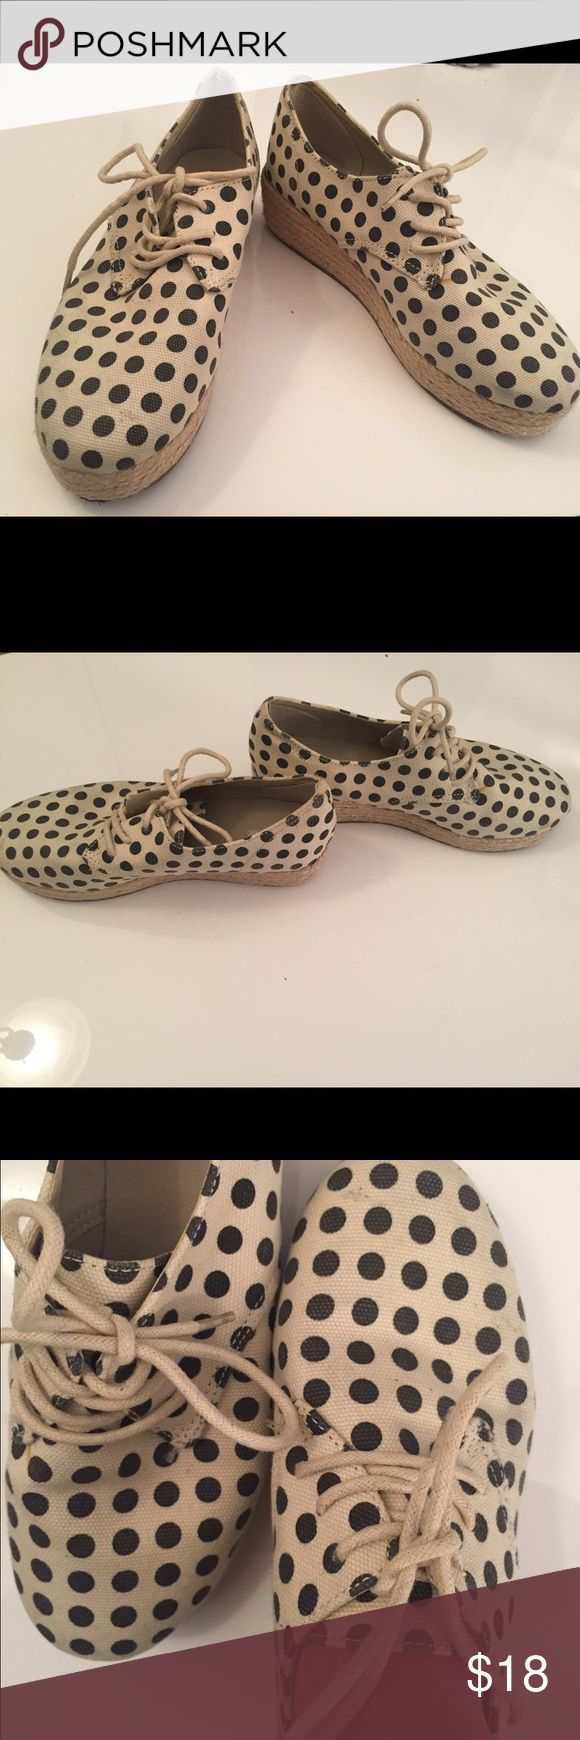 URBAN OUTFITTE POLKA DOT PLATFORM ESPADRILLES SZ 7 Great platform espadrilles. Looks great with dresses and jeans!! Urban Outfitters Shoes Espadrilles